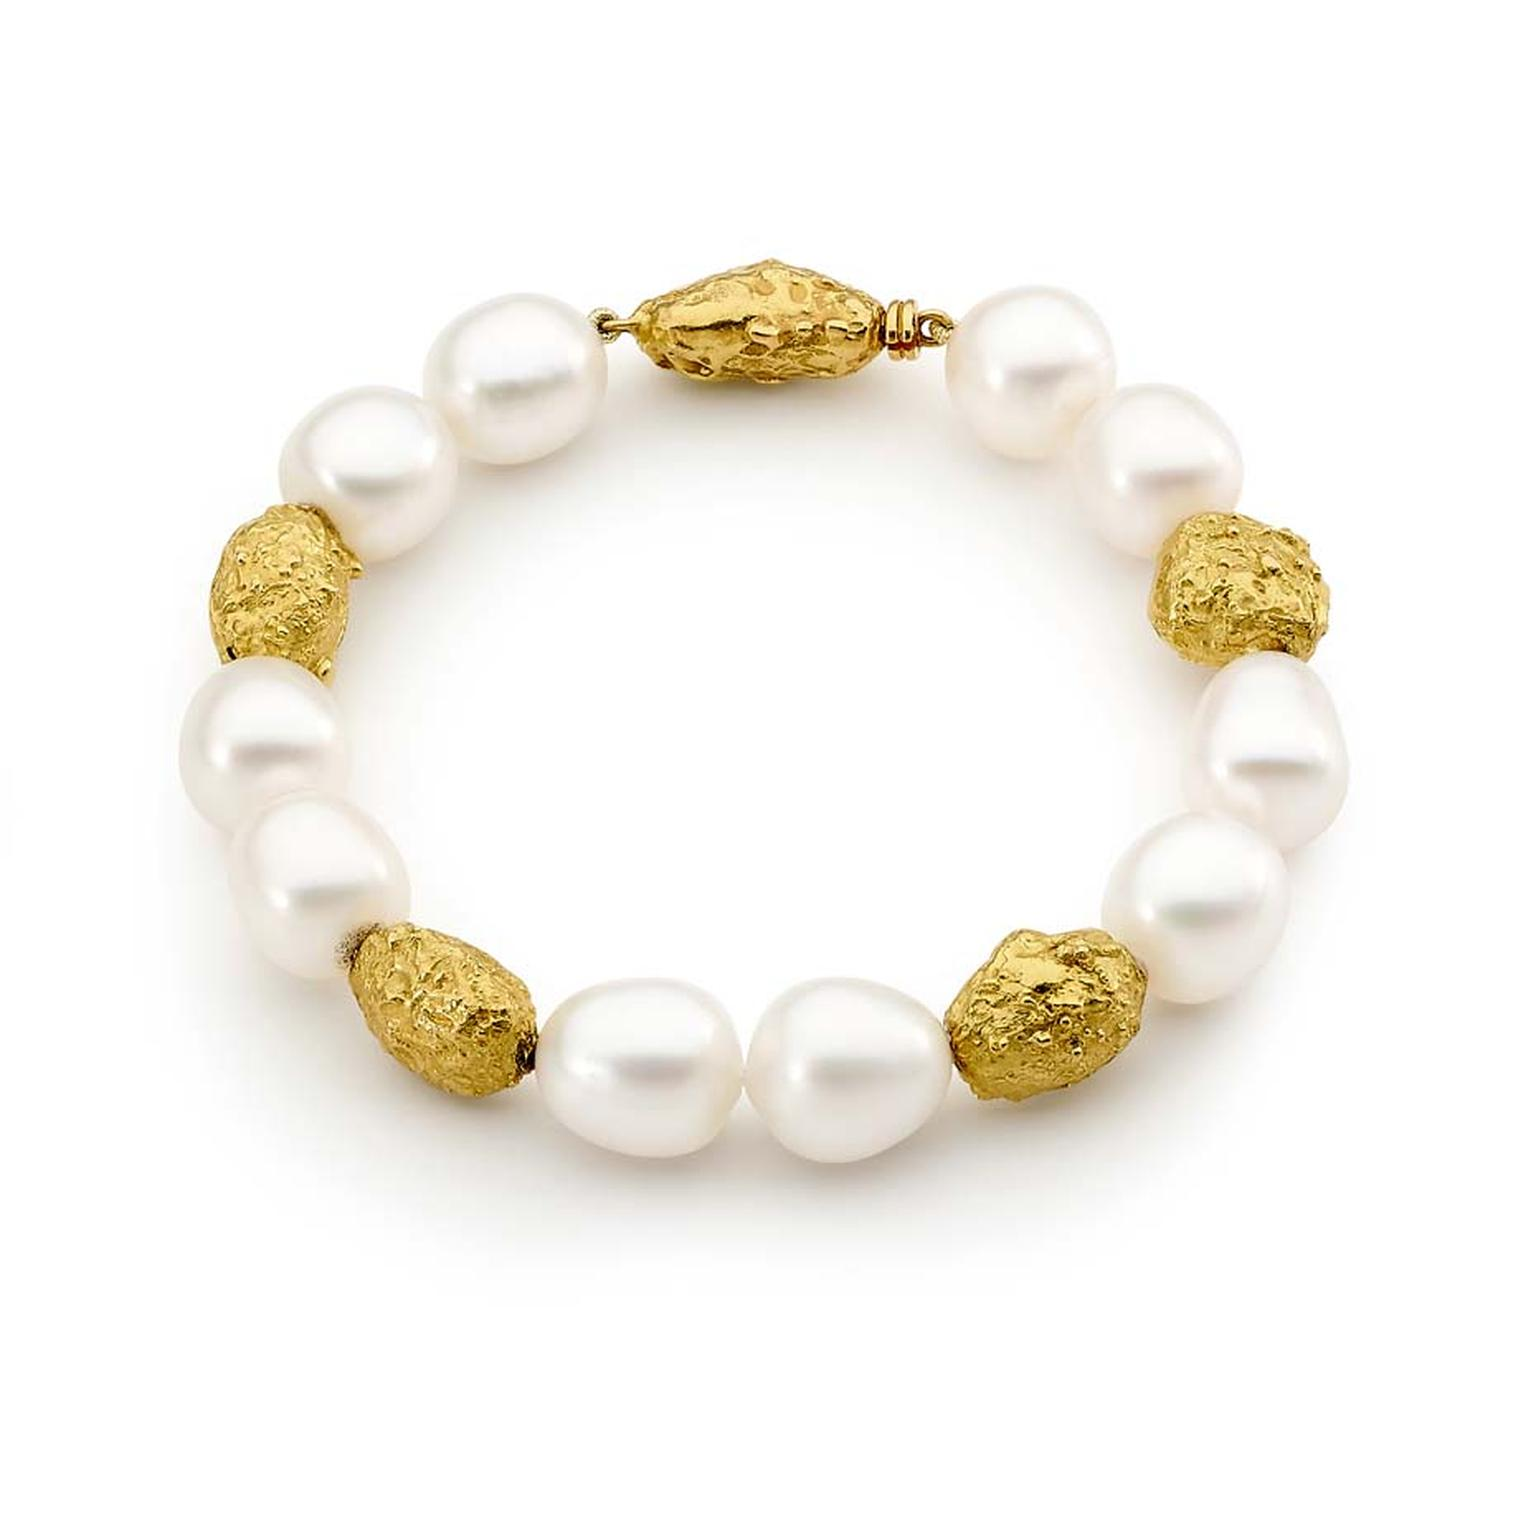 Australian Pearls_Linneys_yellow gold Australian South Sea pearl bracelet $8500.jpg